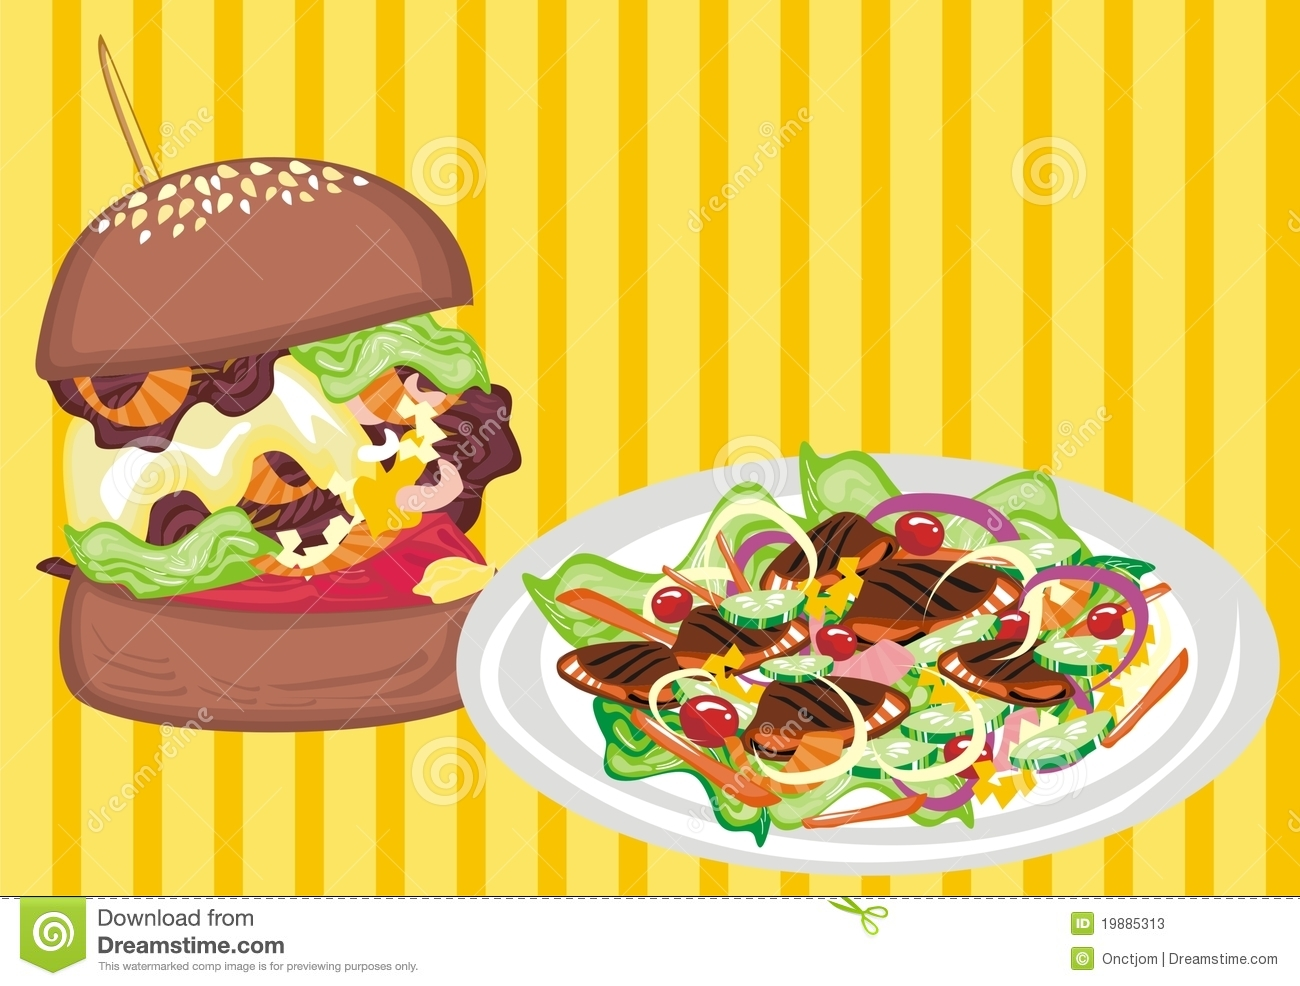 Junk Food Vs Healthy Food Stock Vector Illustration Of Illustration